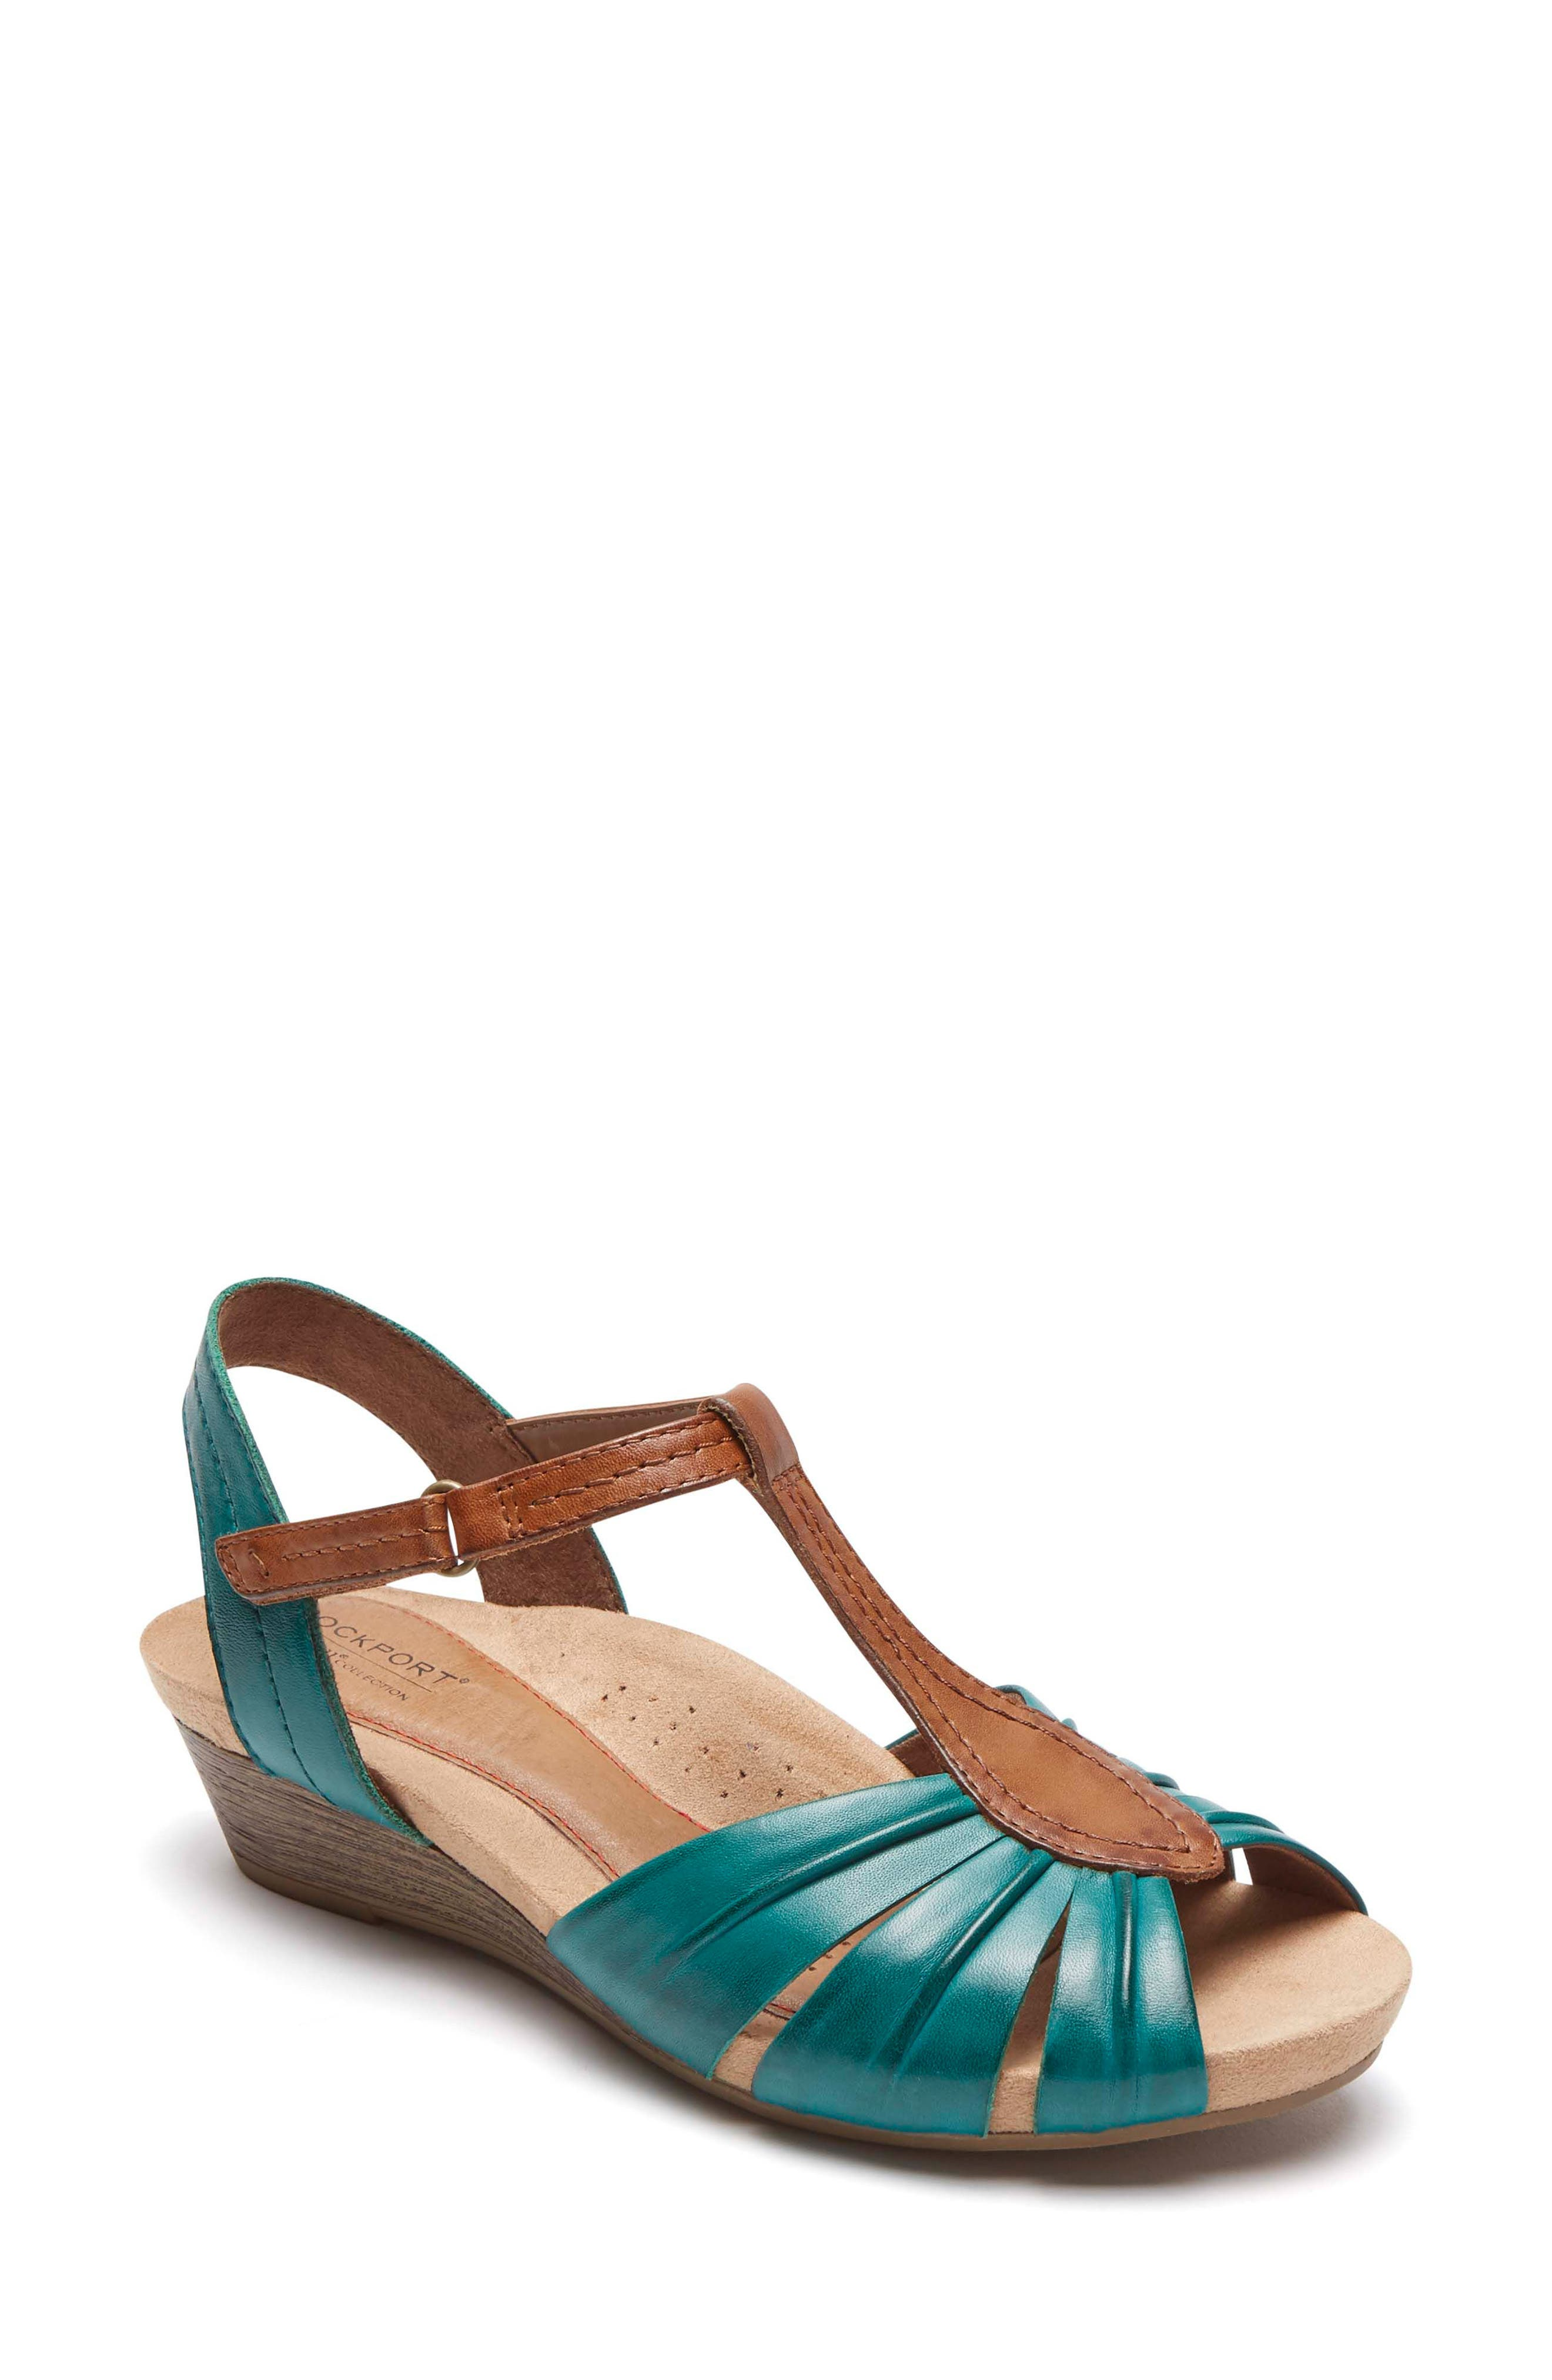 Hollywood Pleat Wedge Sandal,                         Main,                         color, Lagoon Leather